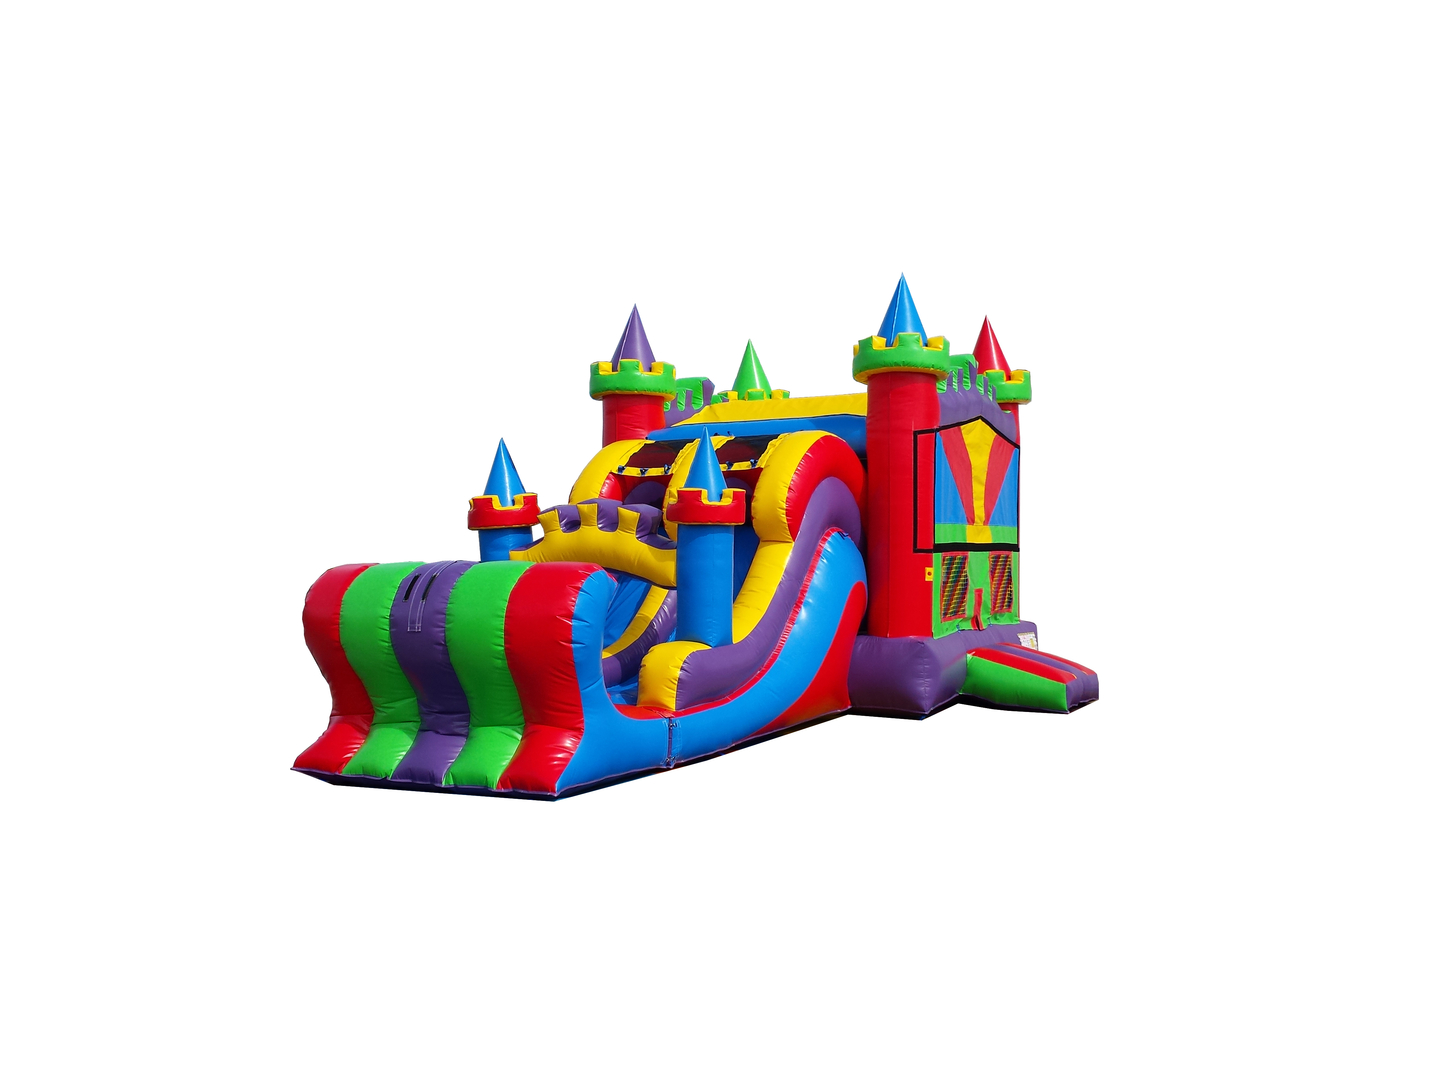 Tremendous Bounce House Rentals Water Slide Rentals Playground Home Interior And Landscaping Ologienasavecom